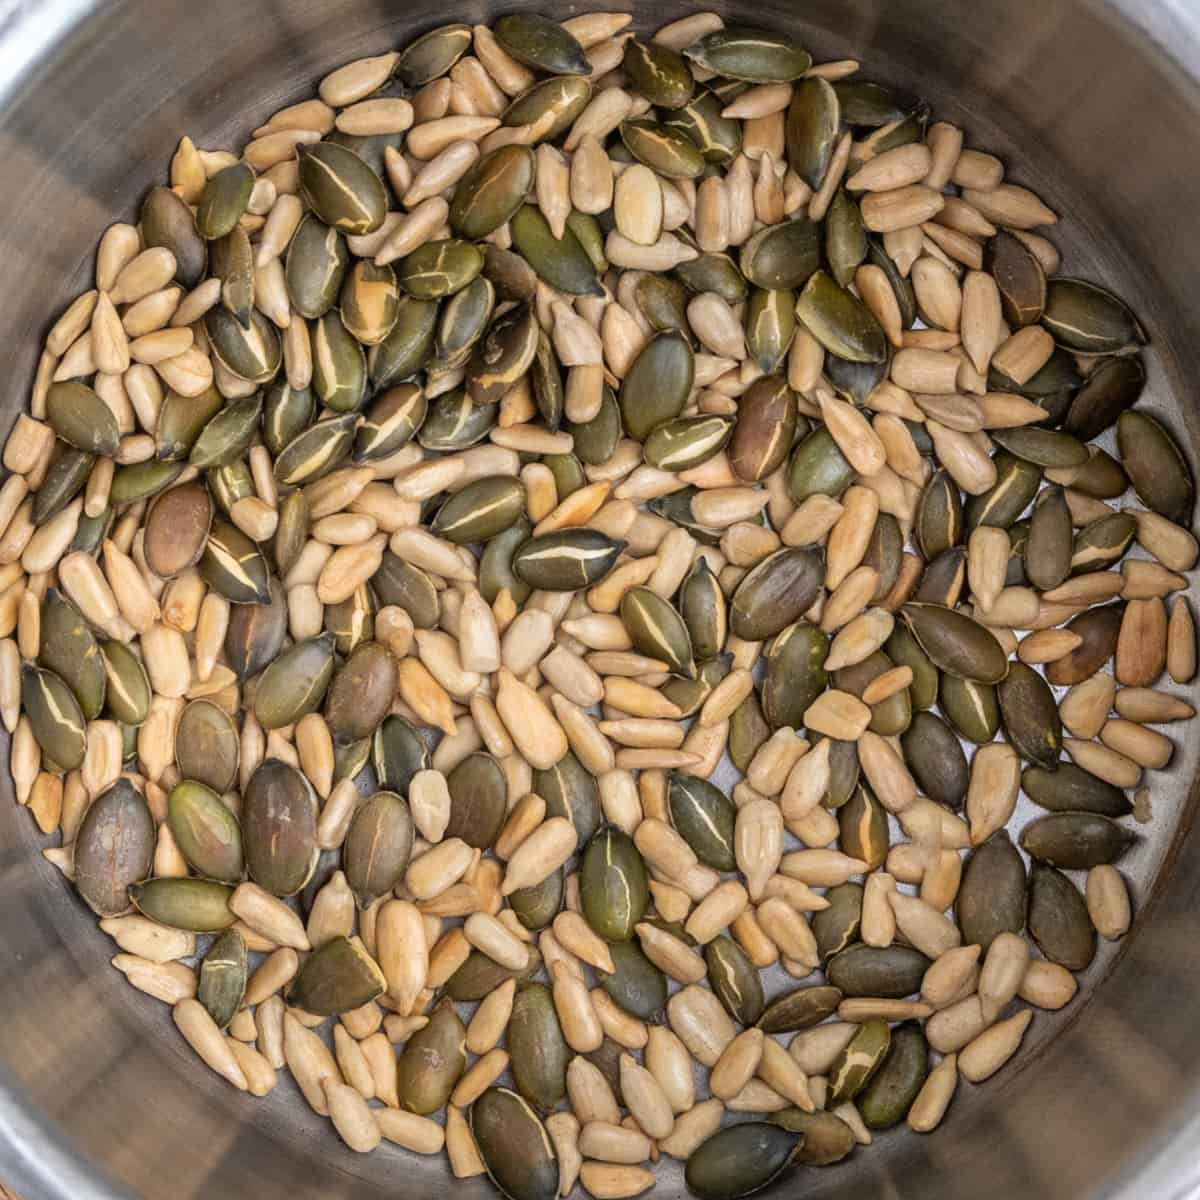 A pan with lightly golden toasted sunflower and pumpkin seeds.